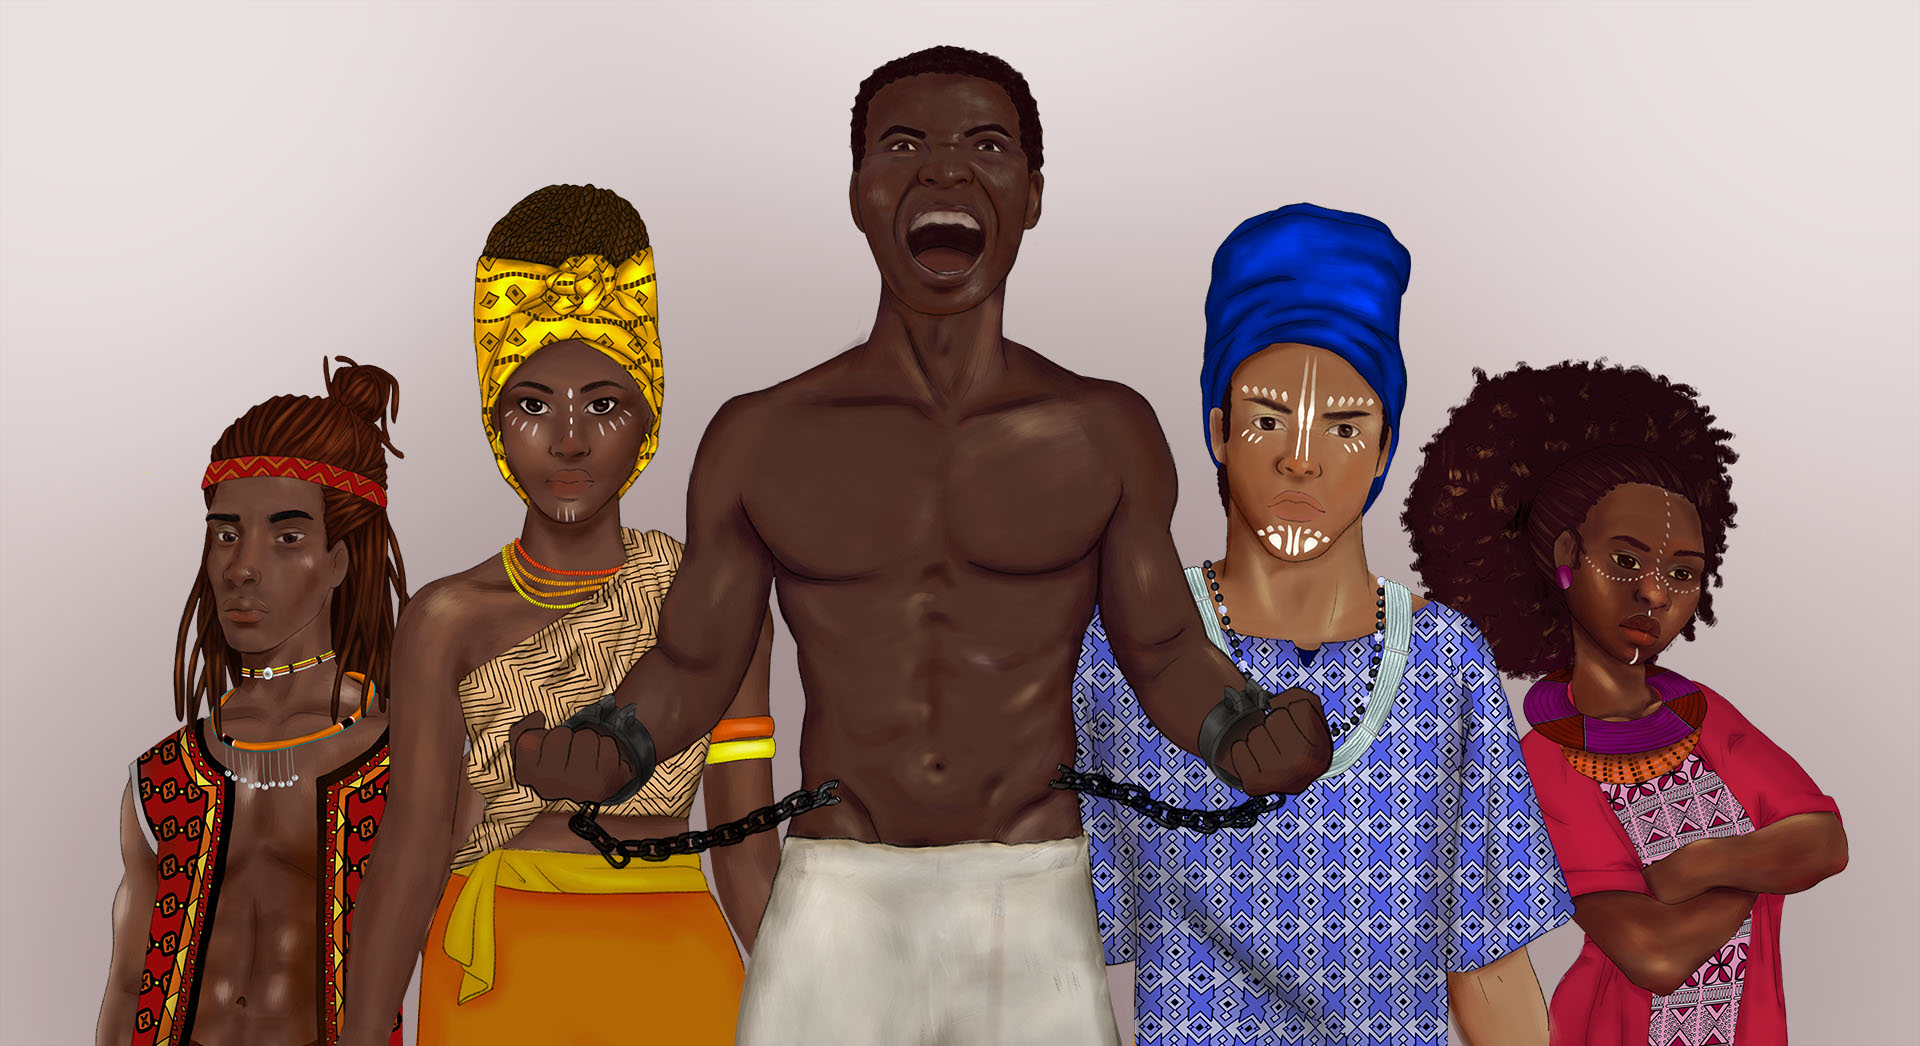 digital drawing of 5 black people. the 4 people in the back are wearing colourful angolan clothing while the one in the front is a slave breaking his chains